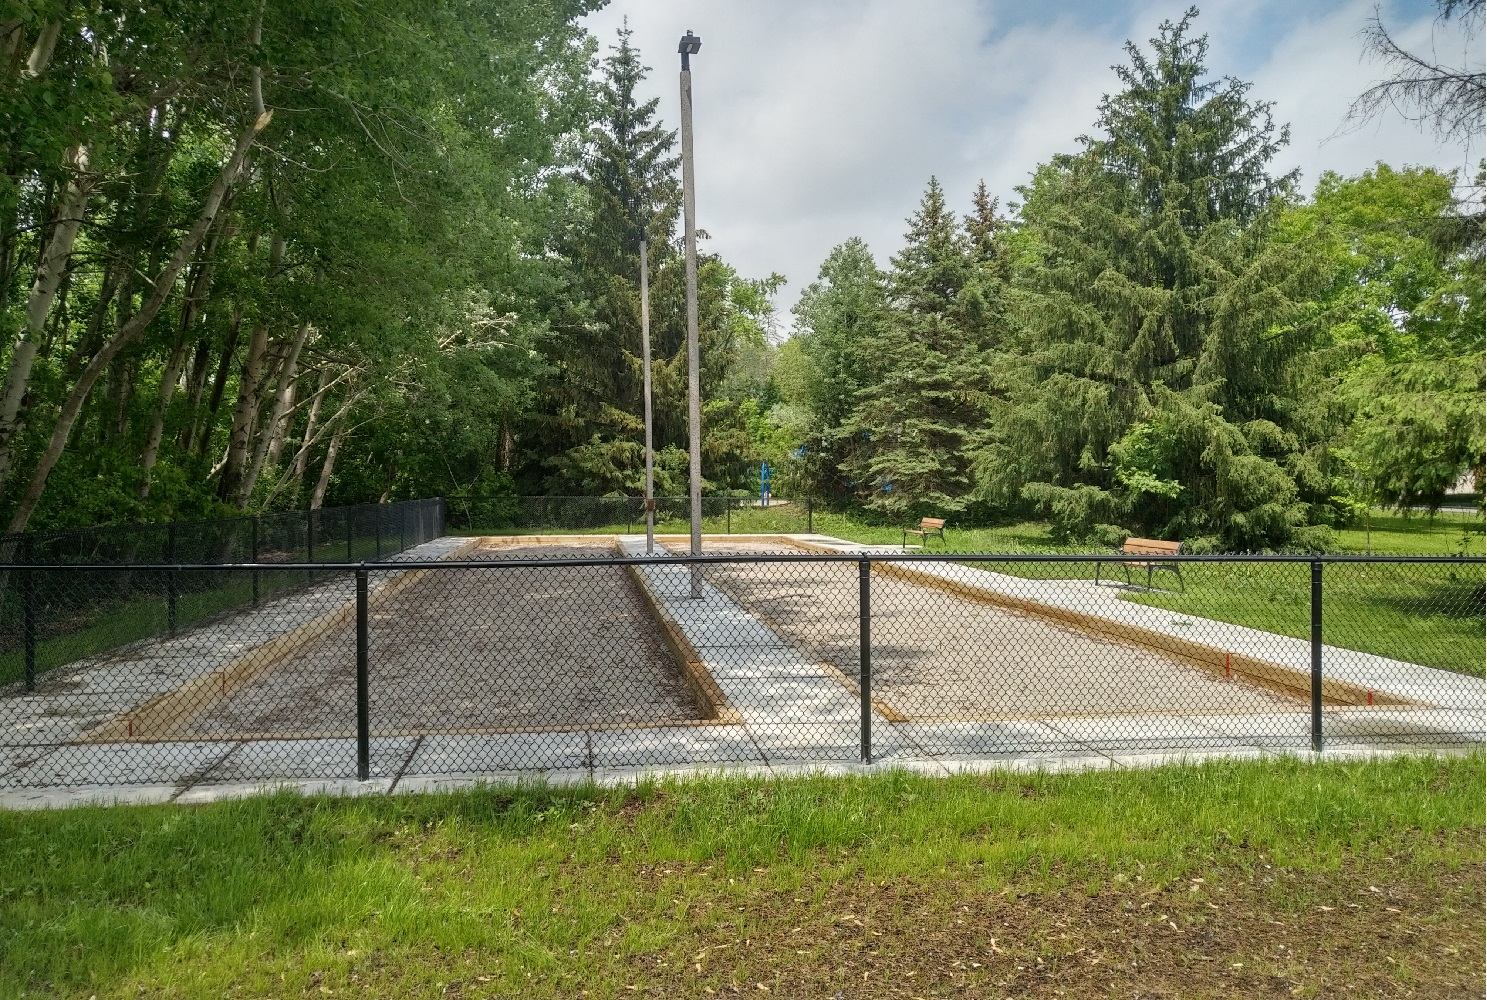 View of recently constructed bocce courts with park benches